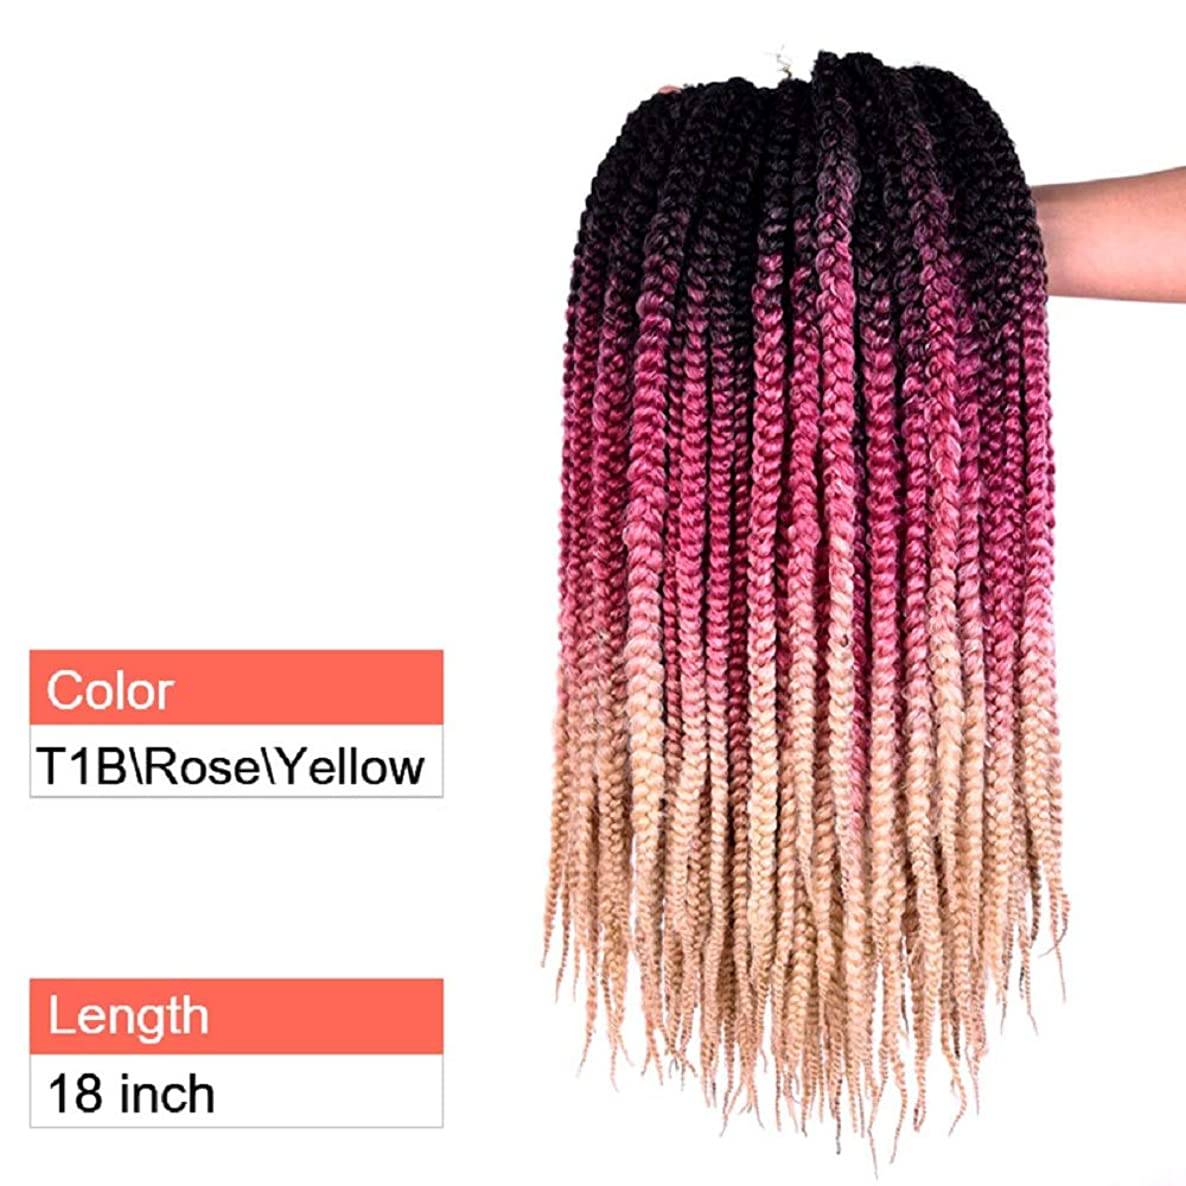 PAPWOO Box Braid Crochet Hair 18 inch 6 Packs/Set 12 Roots/Pack Synthetic Fiber African American Ombre Twist Micro Braiding Hair Bulk Wig For Women (T1B/Rose Yellow)